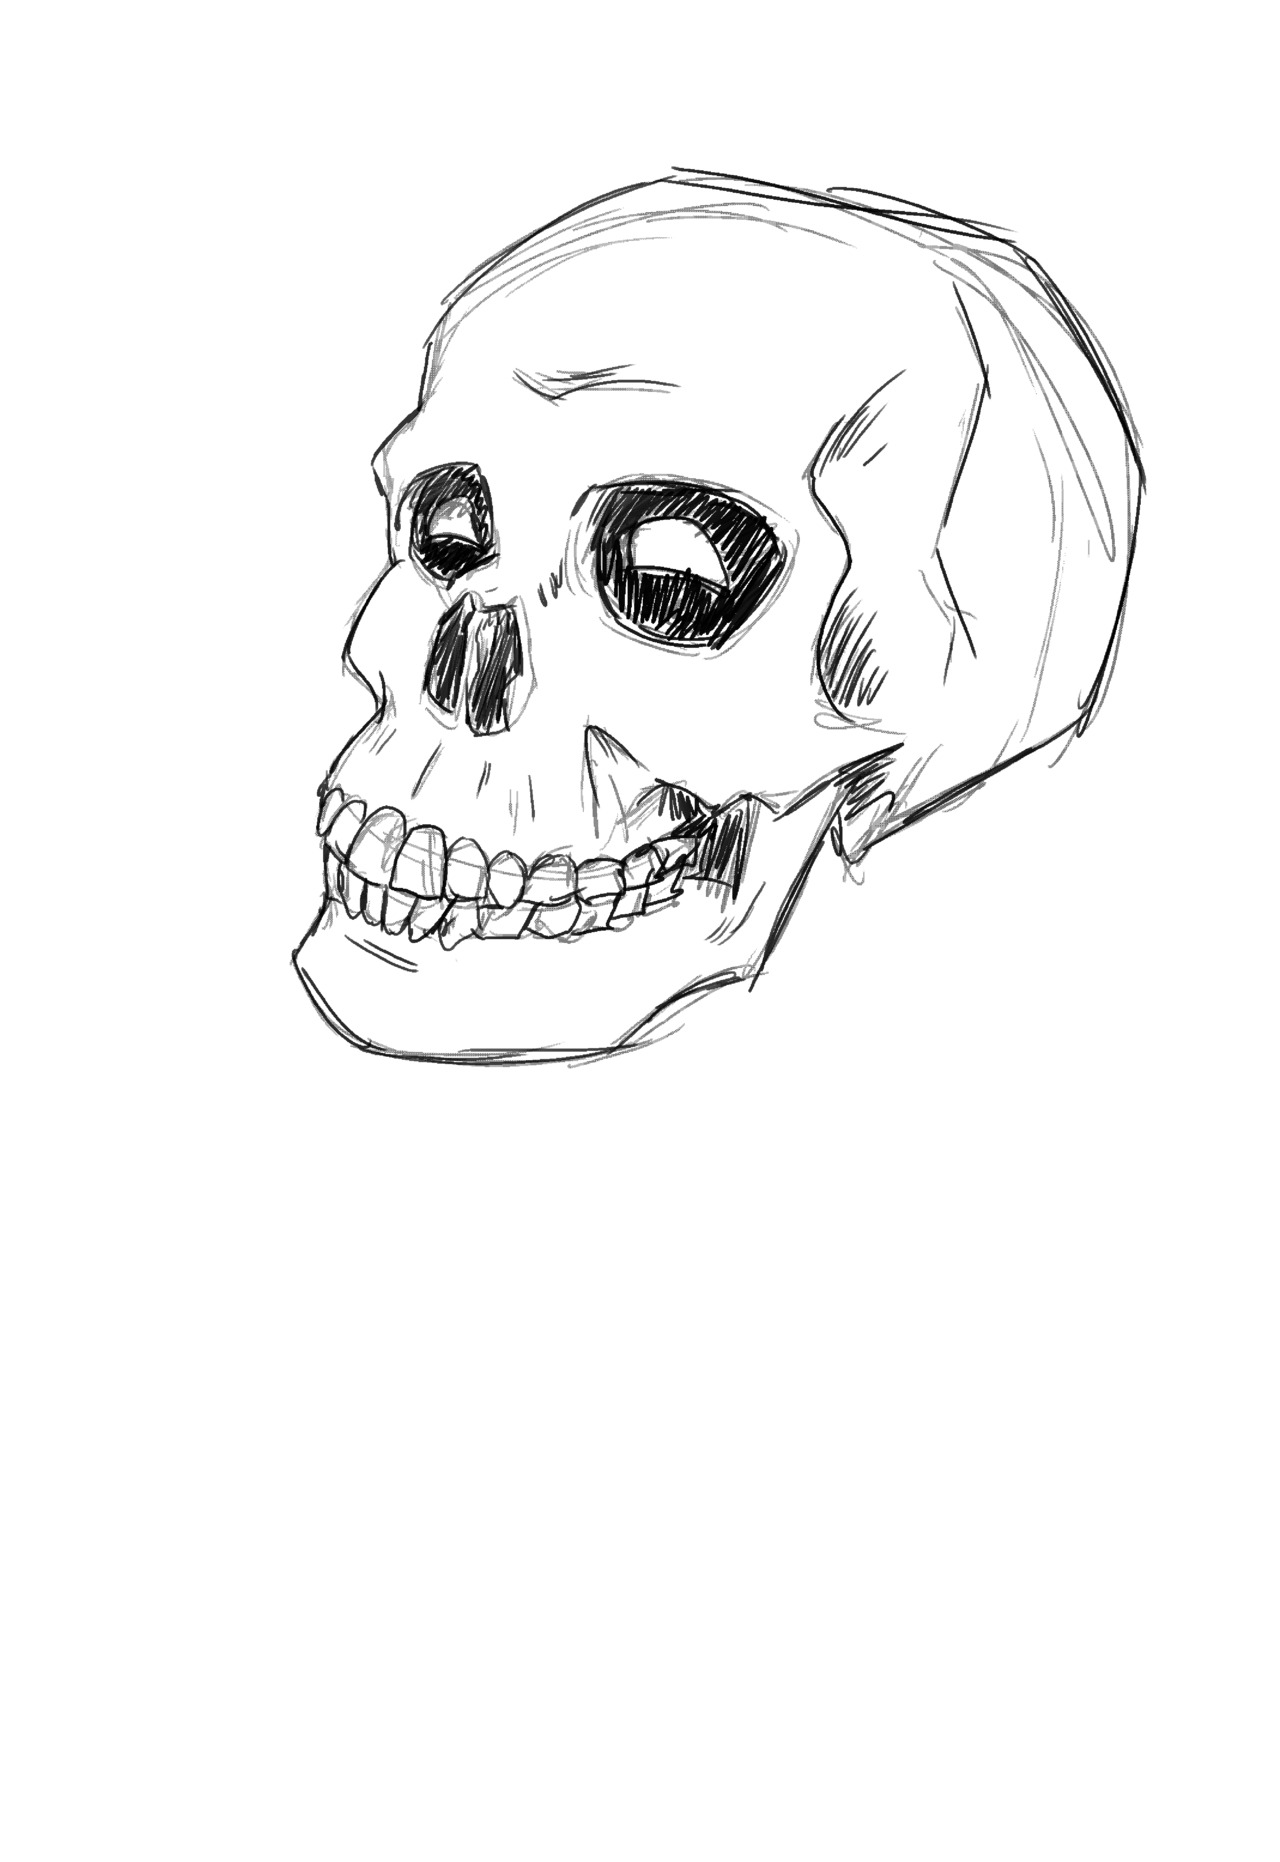 kelmcdonald:  Easiest Dresden Character to draw. Bob the Skull. I decided that the lights in his eyes would change shape and move to show his expressions and emotions. Other than that he's just a Skull.